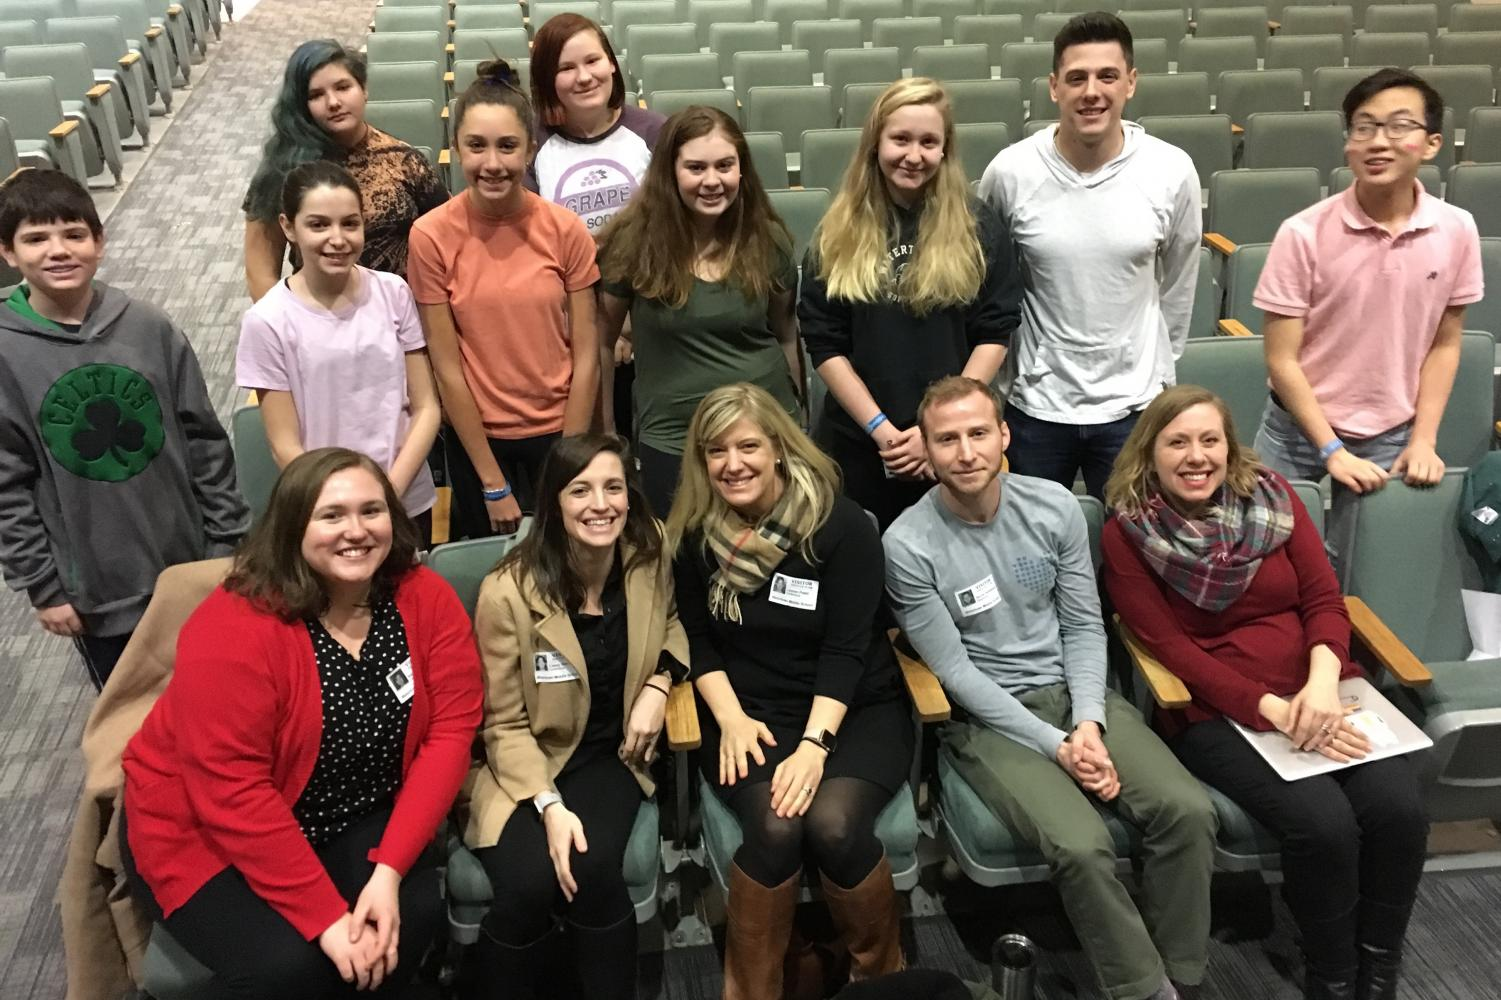 Members of the Watertown Middle School student Leadership Team pose with faculty advisers and representatives from Resilience Gives and the Leukemia & Lymphoma Society after the all-school Pennies for Patients kickoff assembly March 1, 2019.